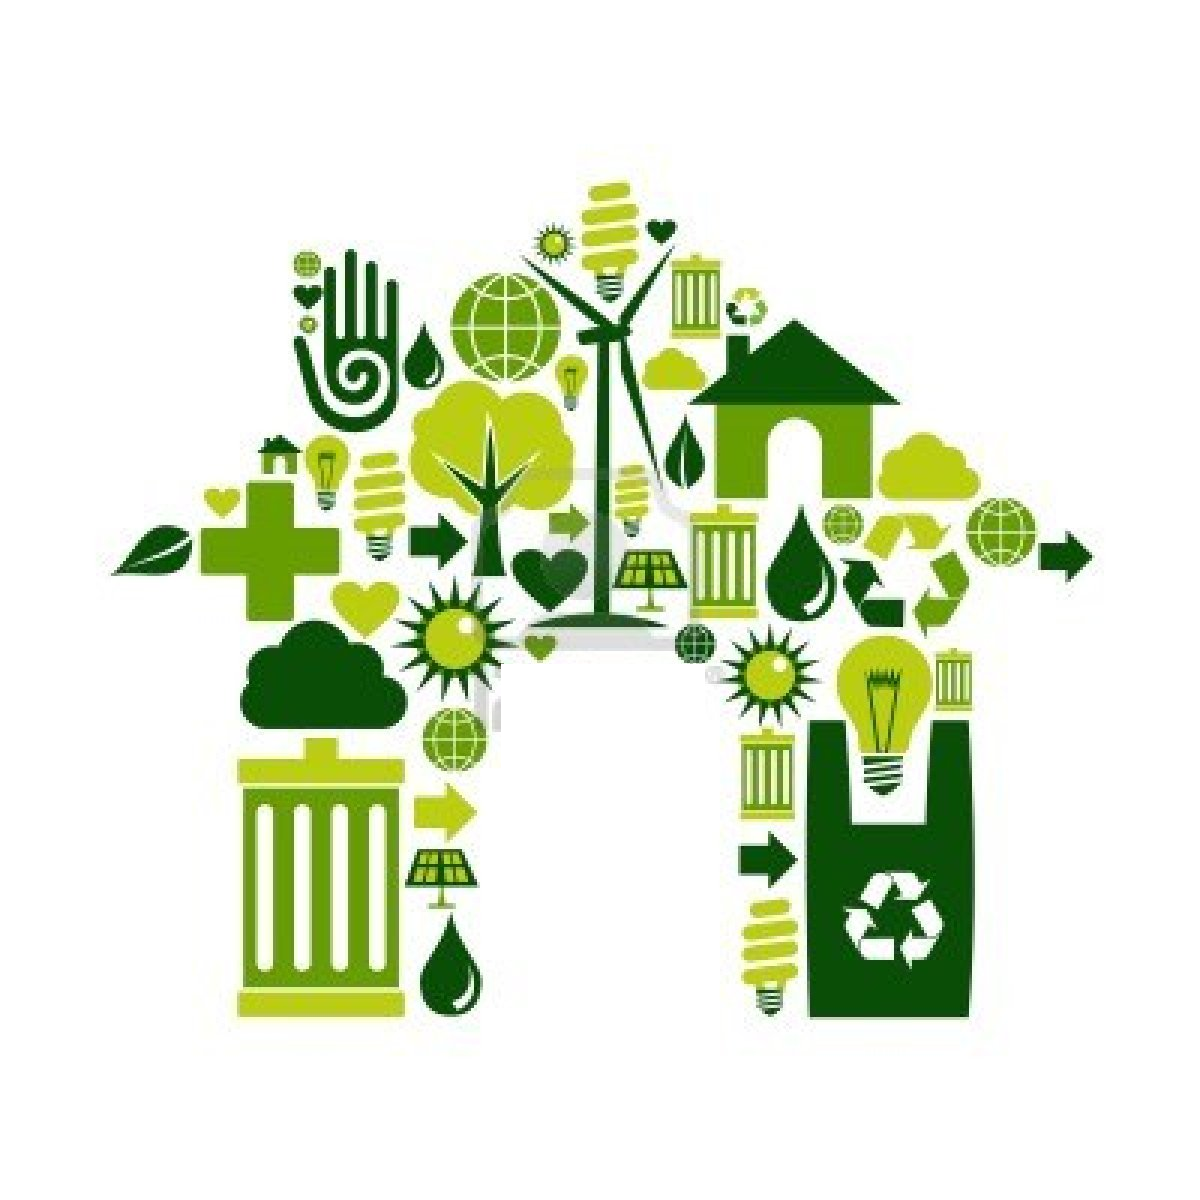 Sustainability starts at home for Green design